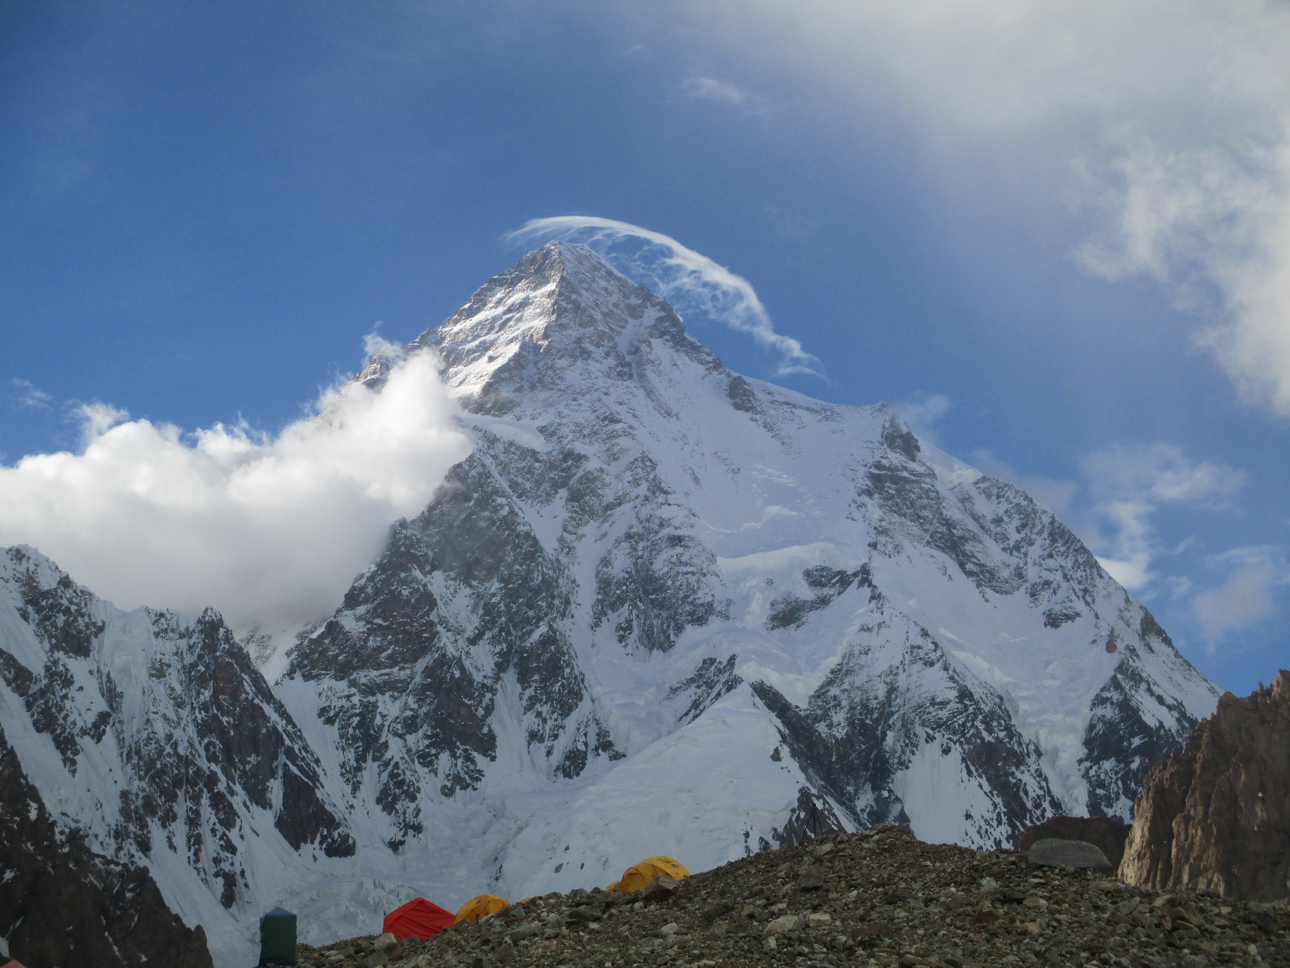 Cloud Dragon over K2